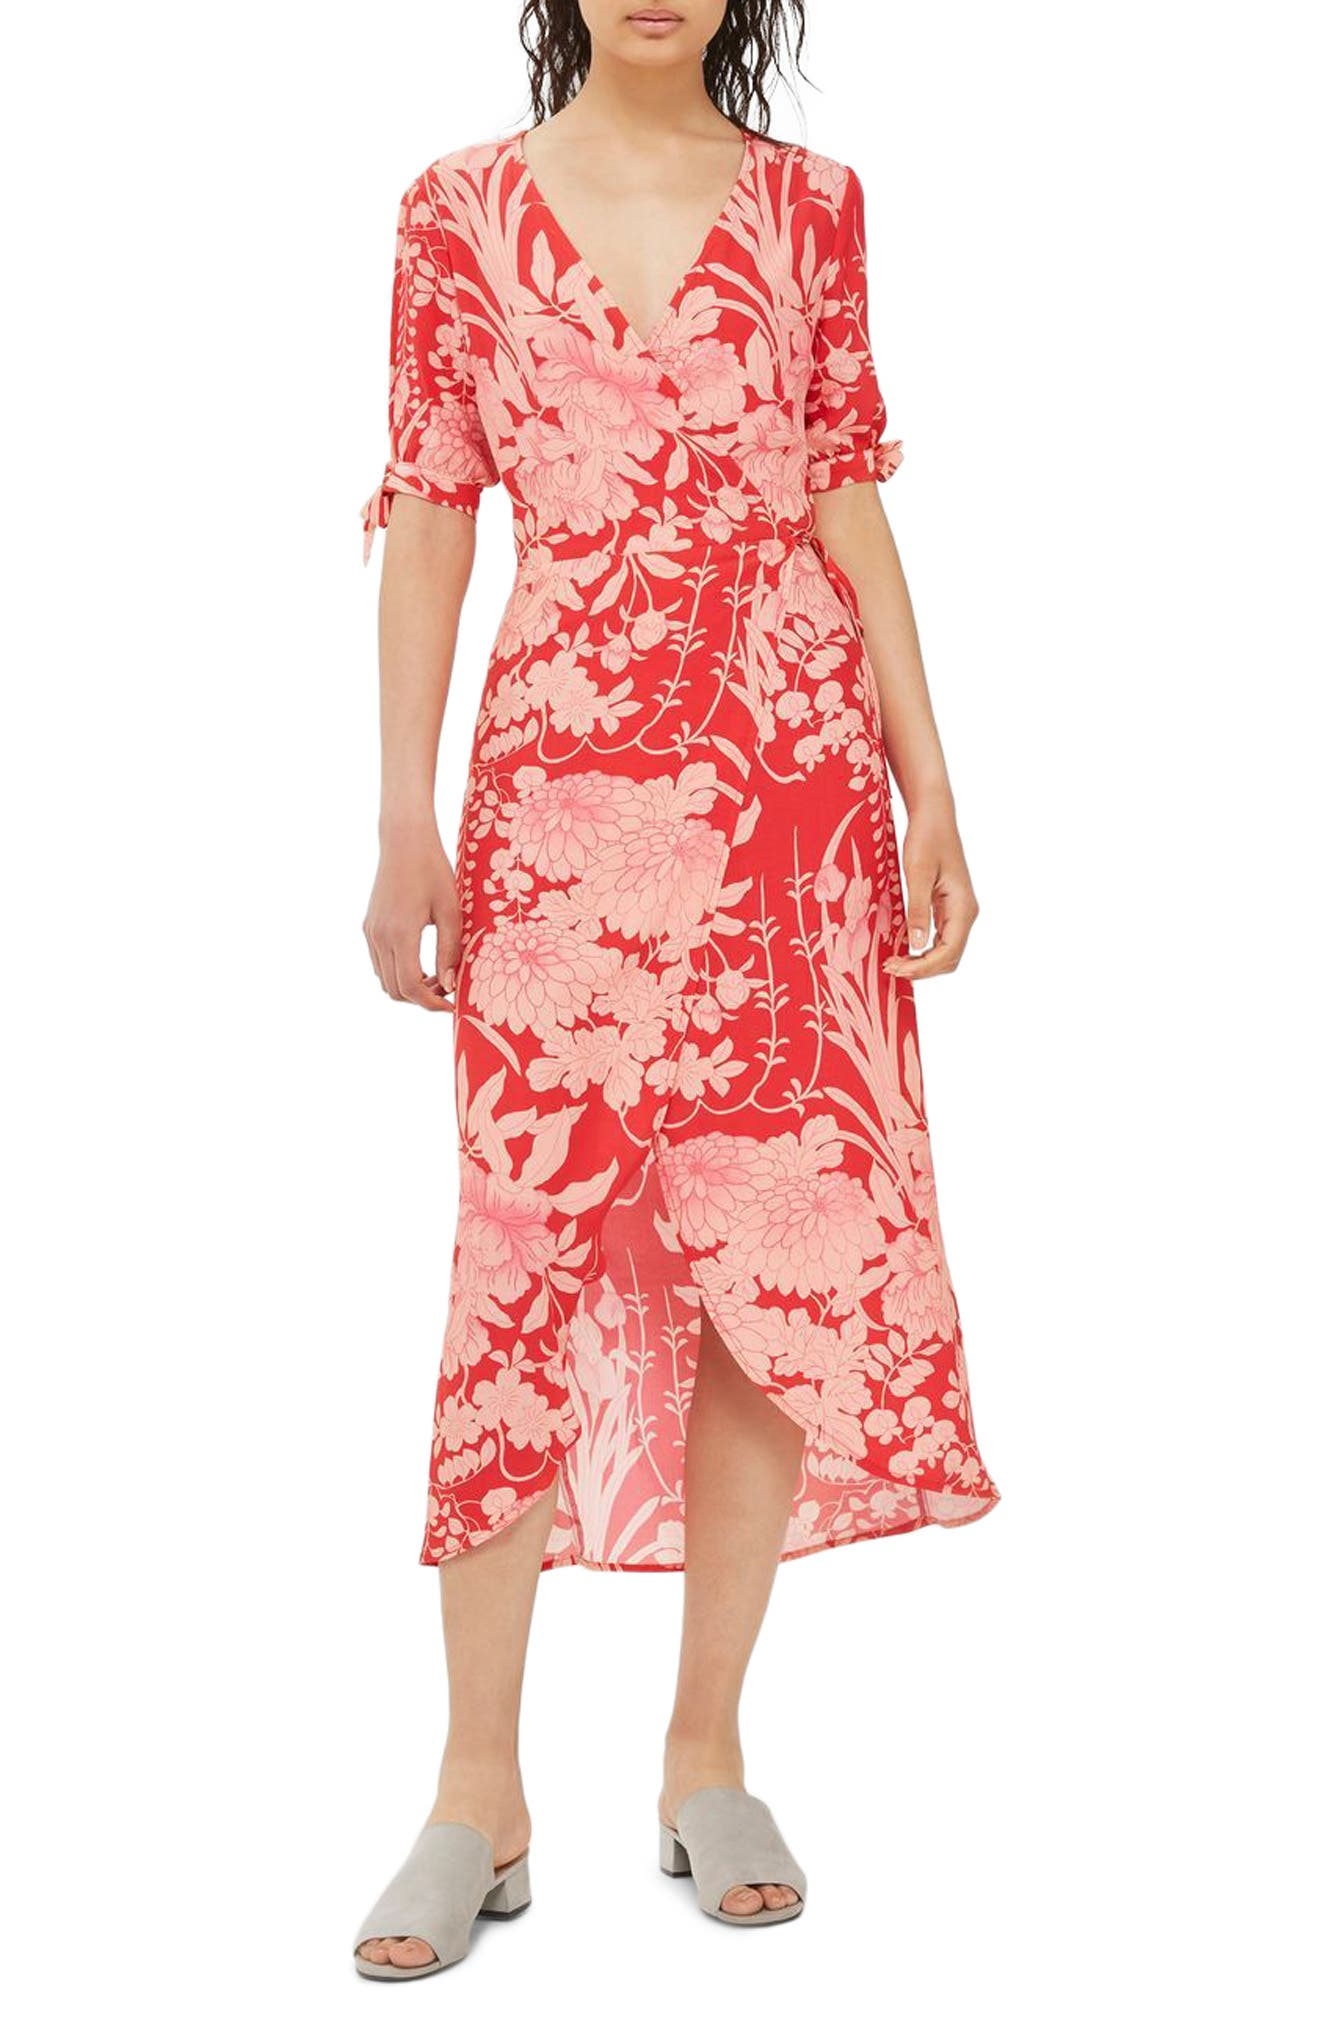 Topshop Floral Tie Sleeve Wrap Midi Dress